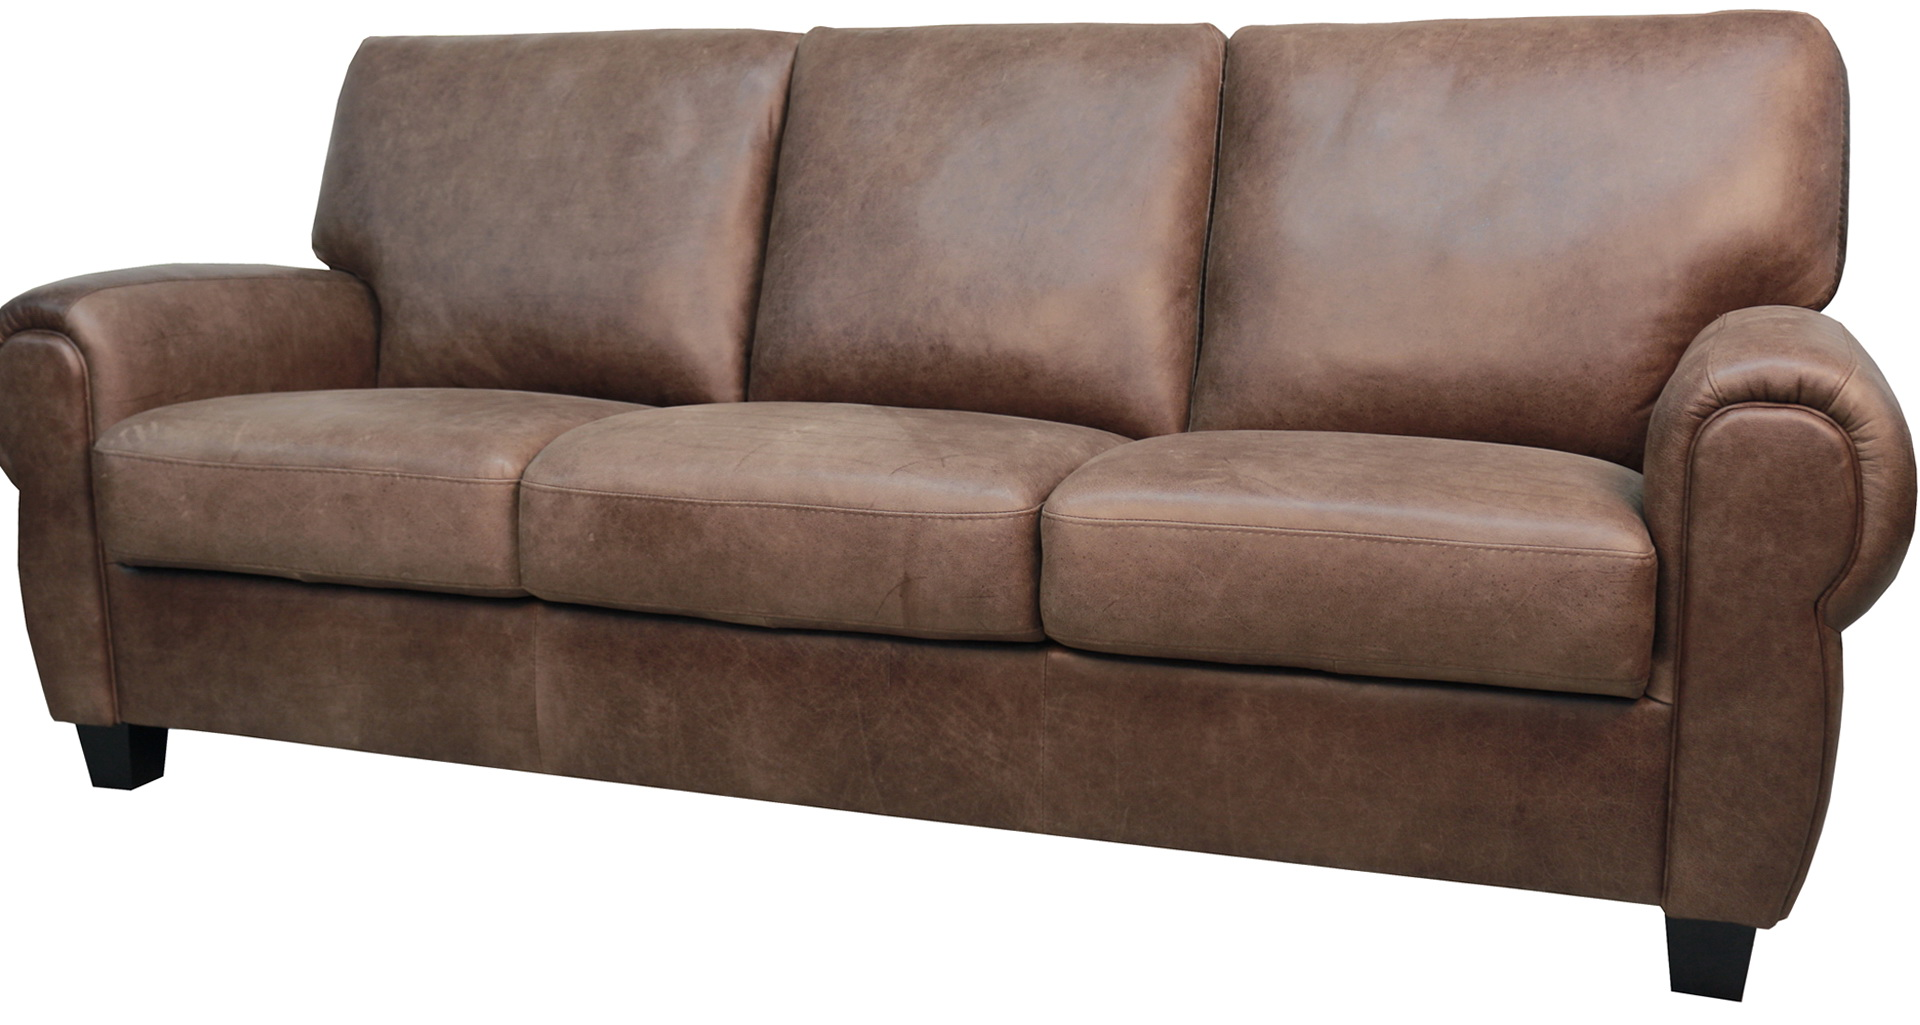 Leather Sofa Repair Houston